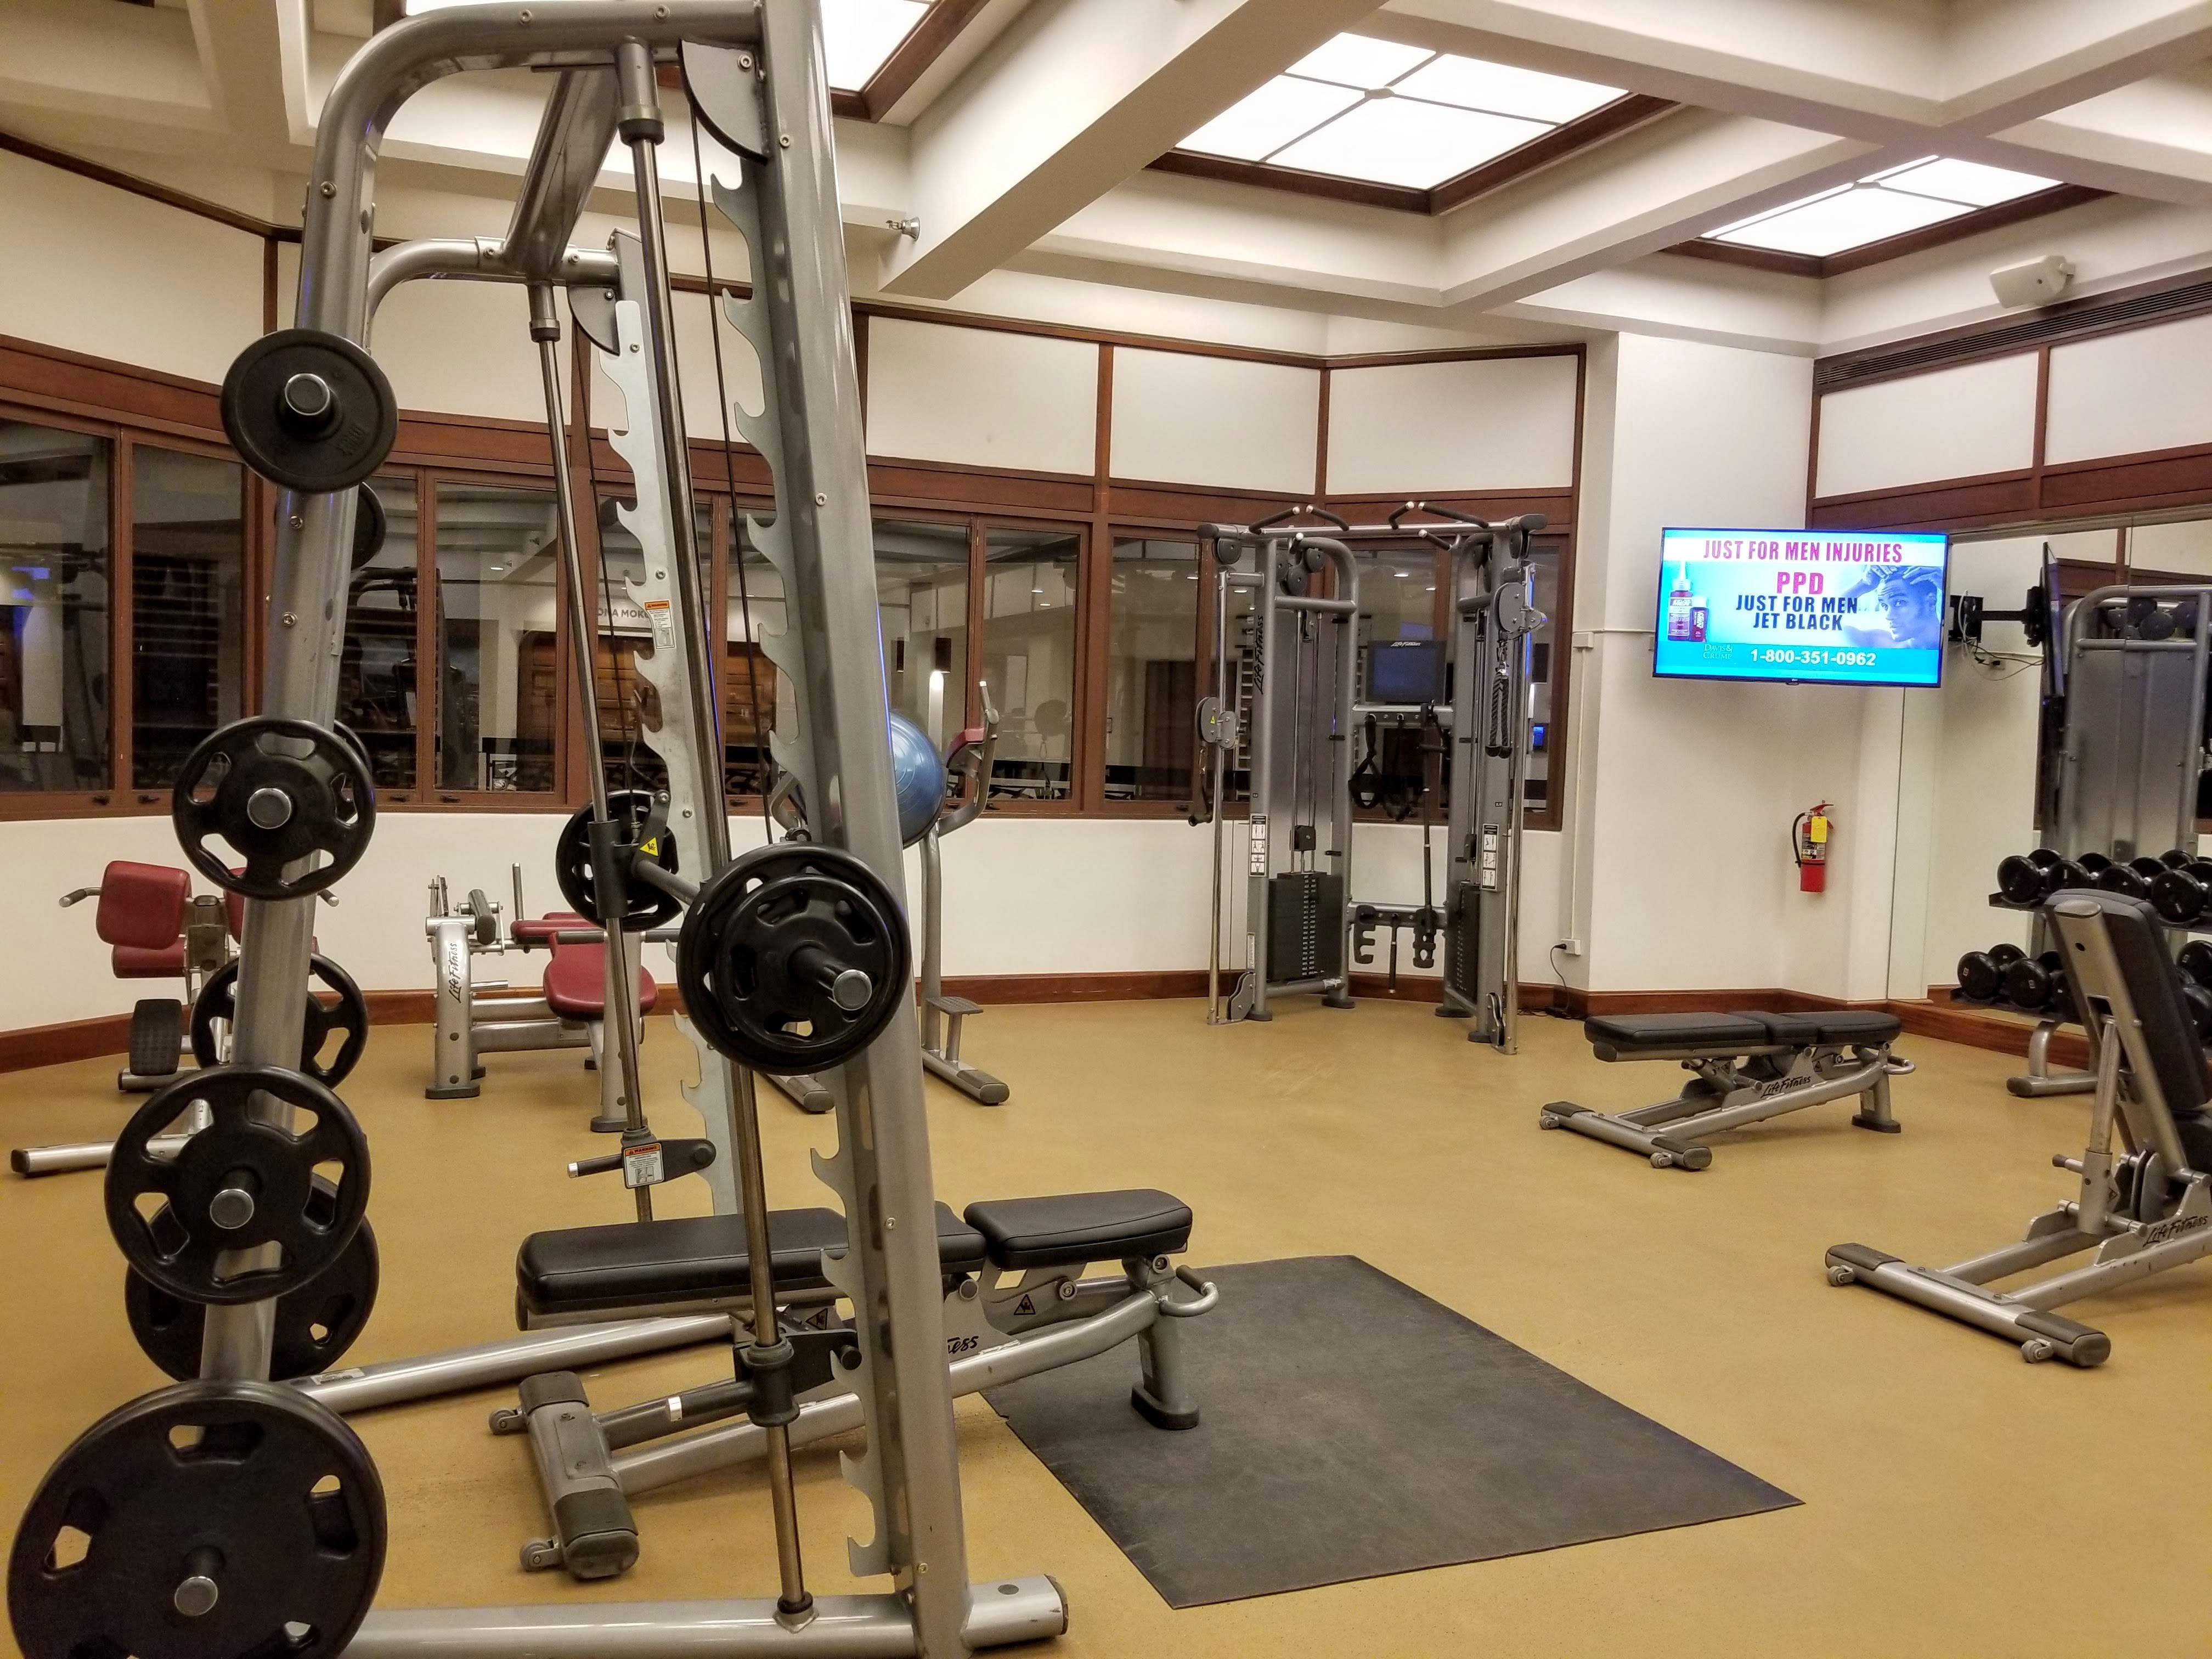 Weight equipment in the gym at the Waikiki Marriott Resort & Spa